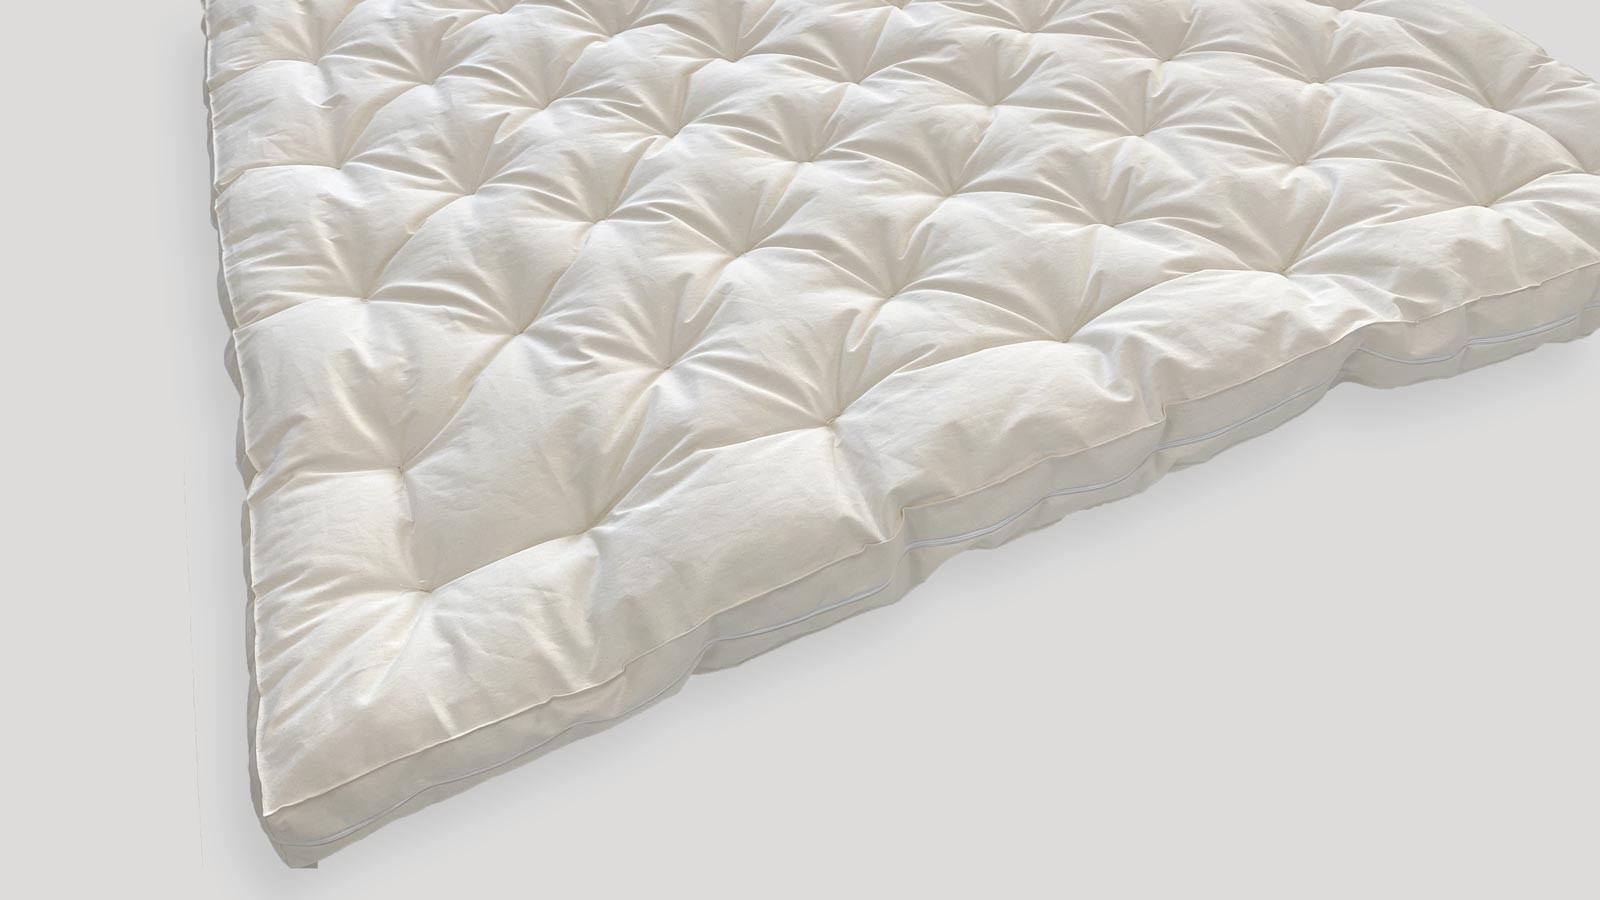 Luxury MicroCoils and Wool Mattress...